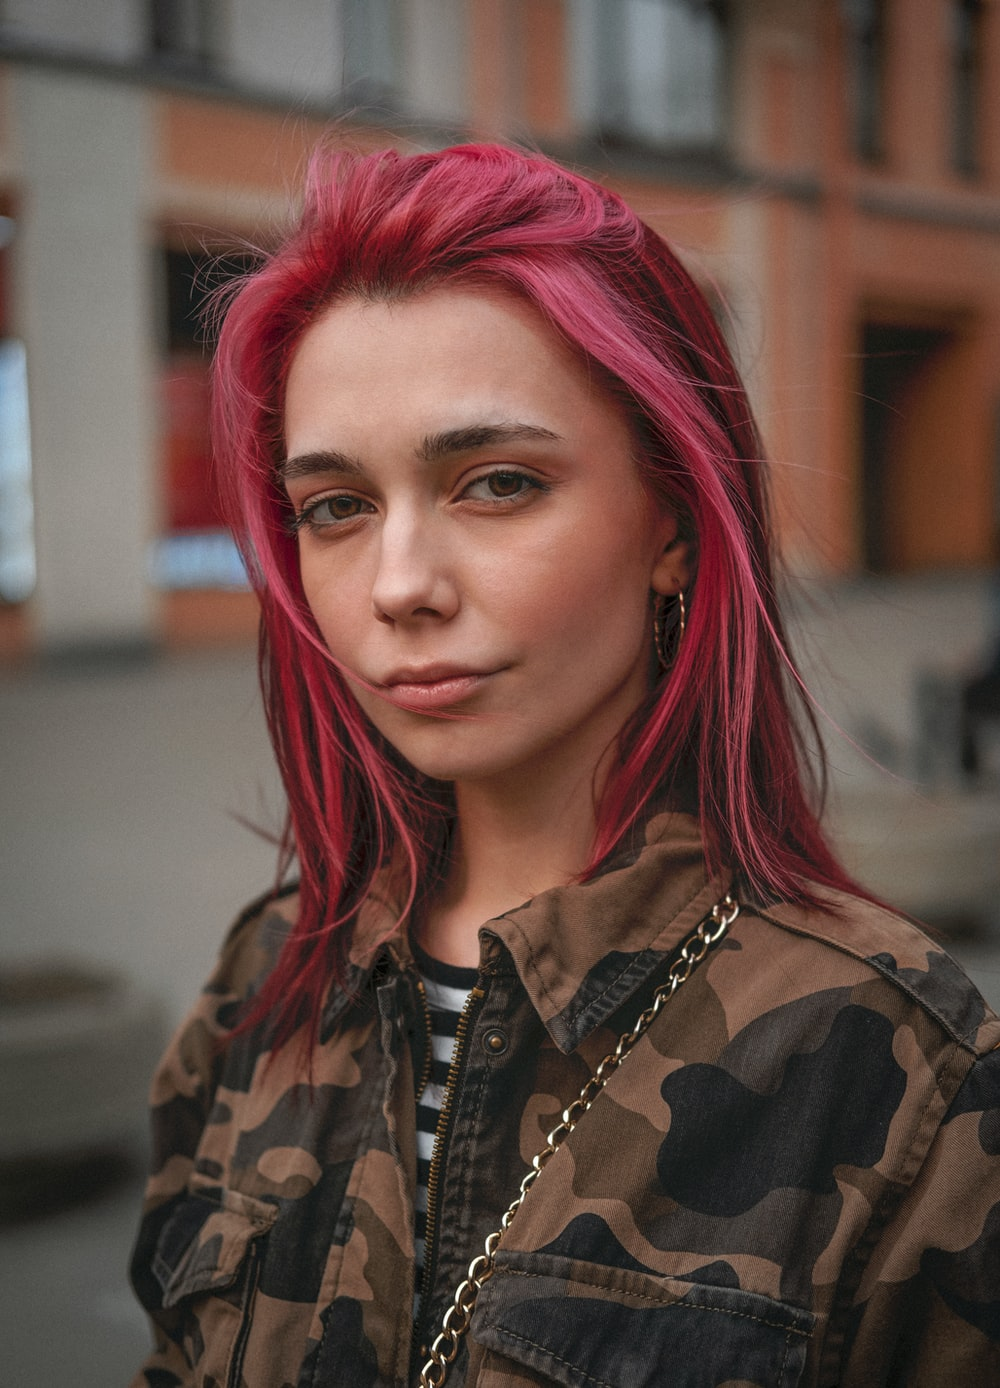 woman in black and brown camouflage shirt with pink hair